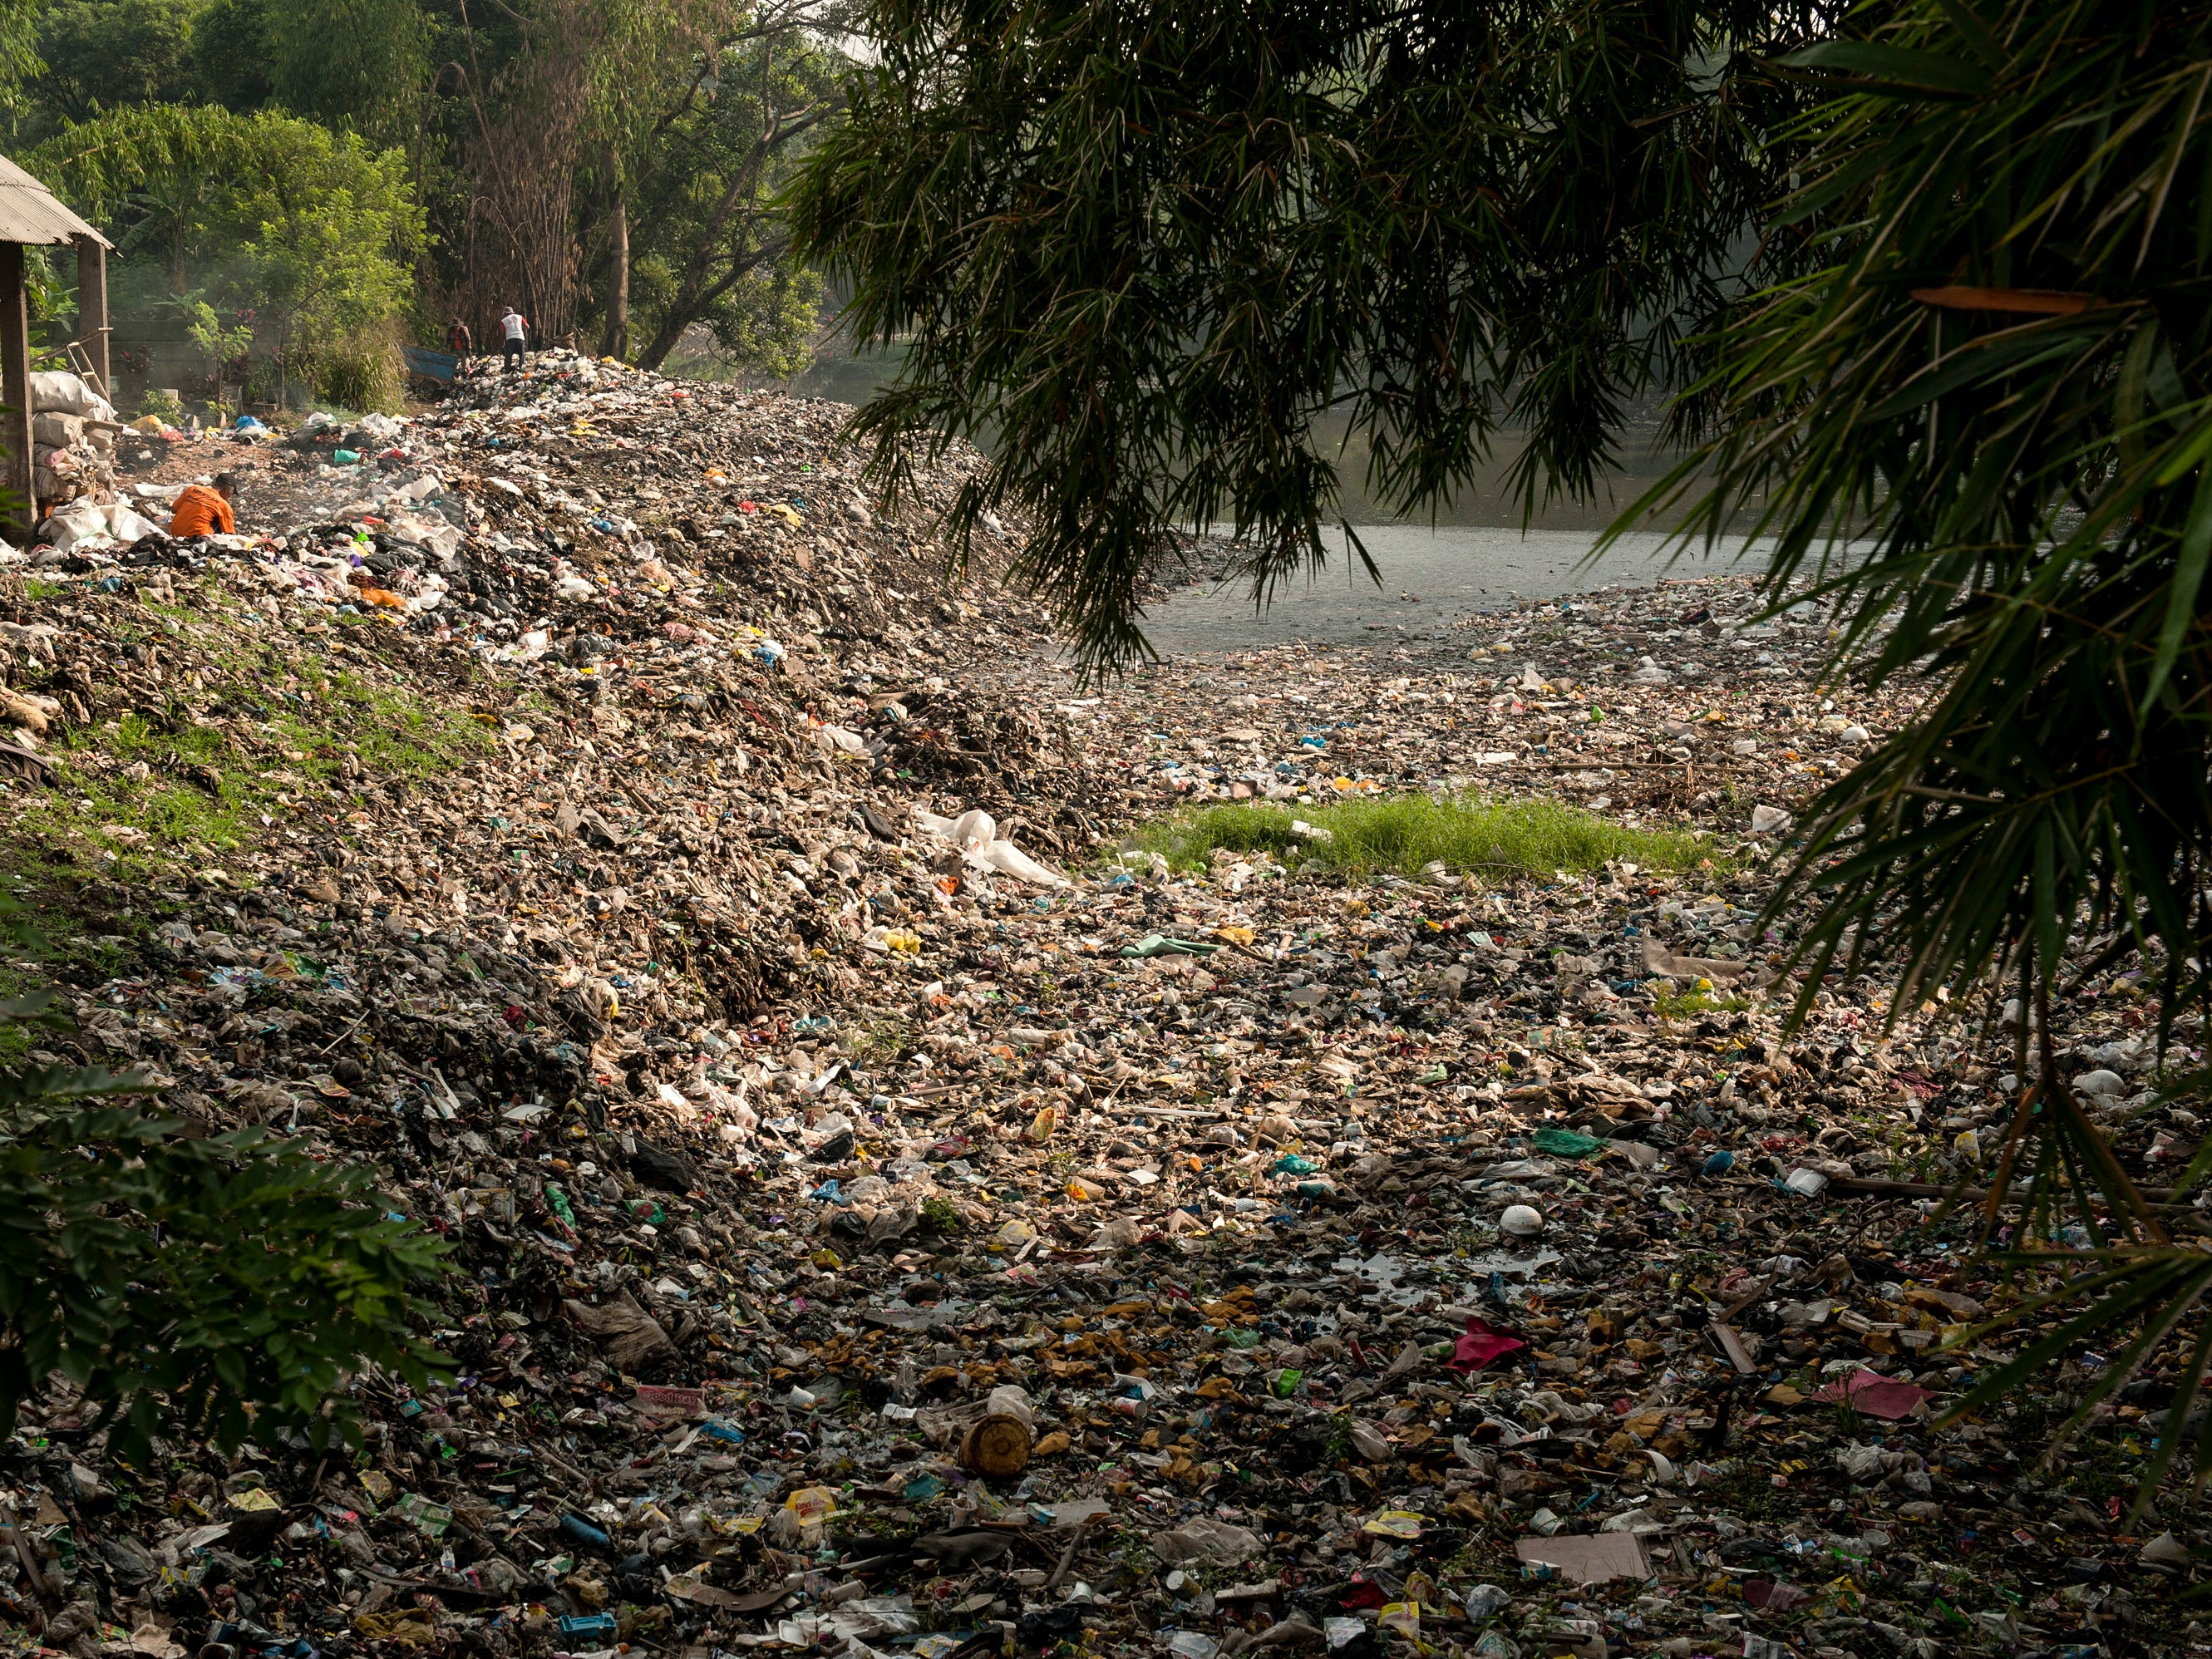 Pollution covers a bank of the Citarum River in Bandung, Indonesia in January 2019. According to reports, Citarum is one of the most polluted rivers in the world, with tons of plastic waste and wastewater, mostly from hundreds of textile factories, disposed directly into the river every day.